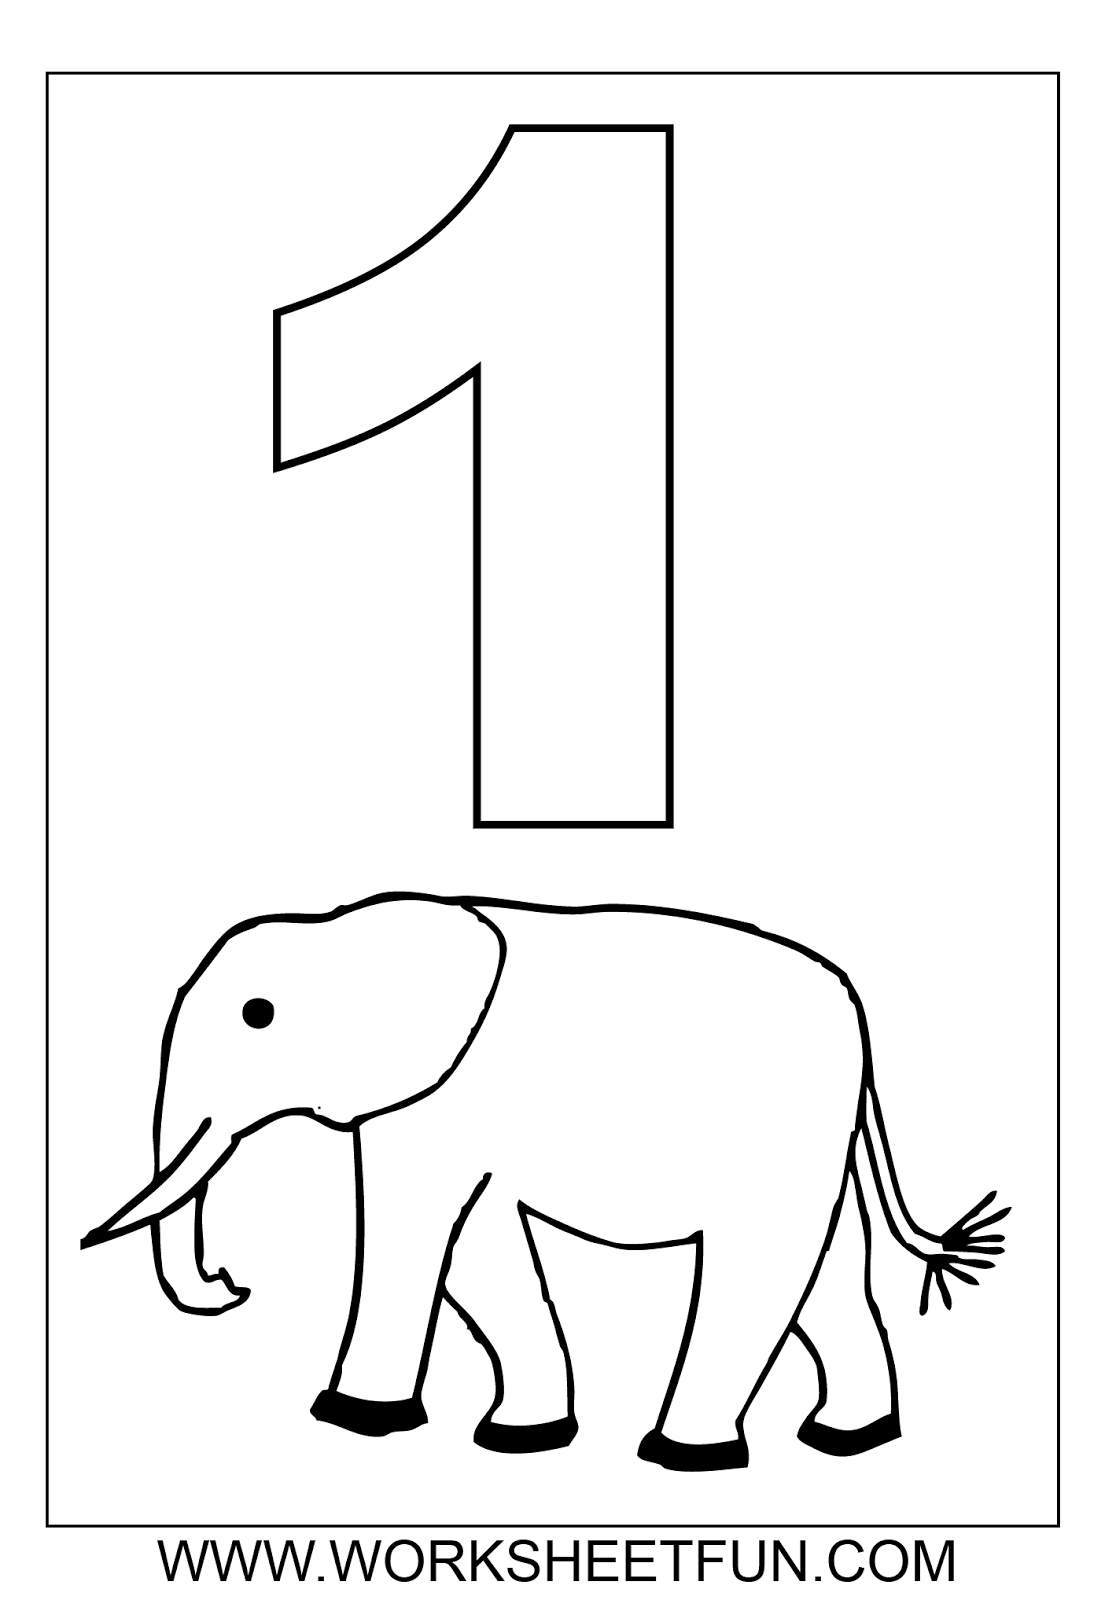 8 Best Images of Numbers 2 Coloring Printables 1-10